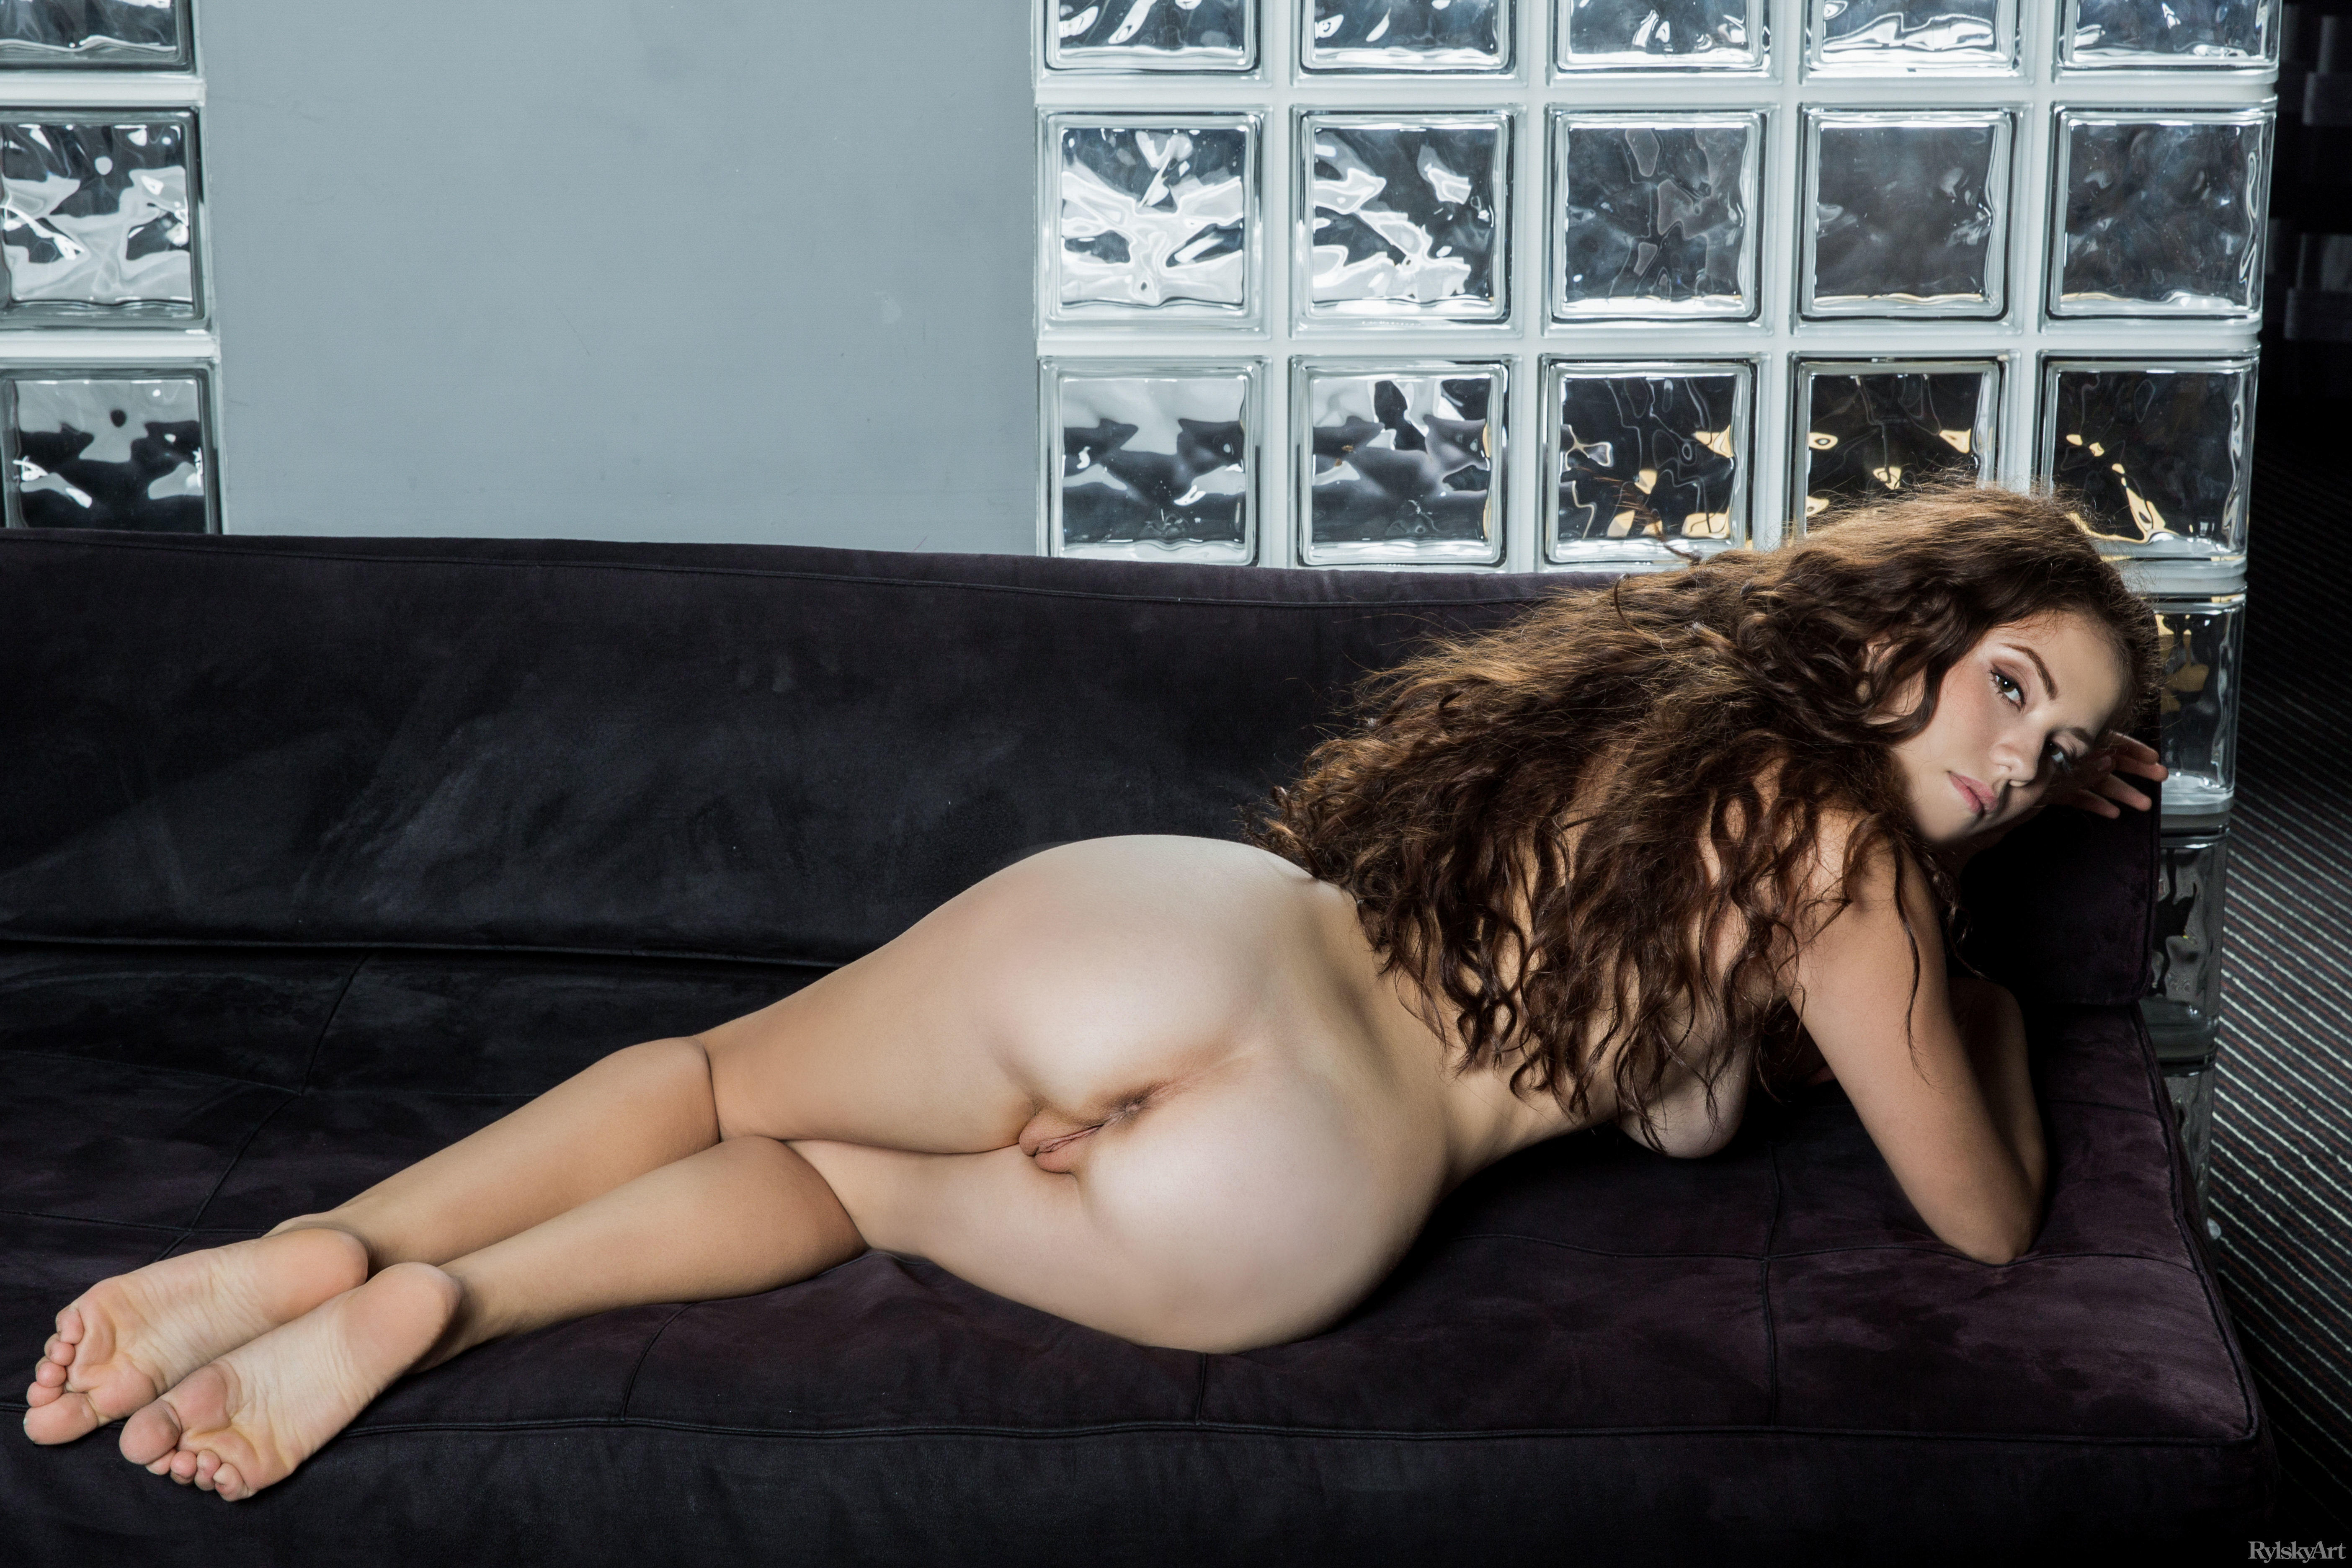 Norma free download naked pics fuck